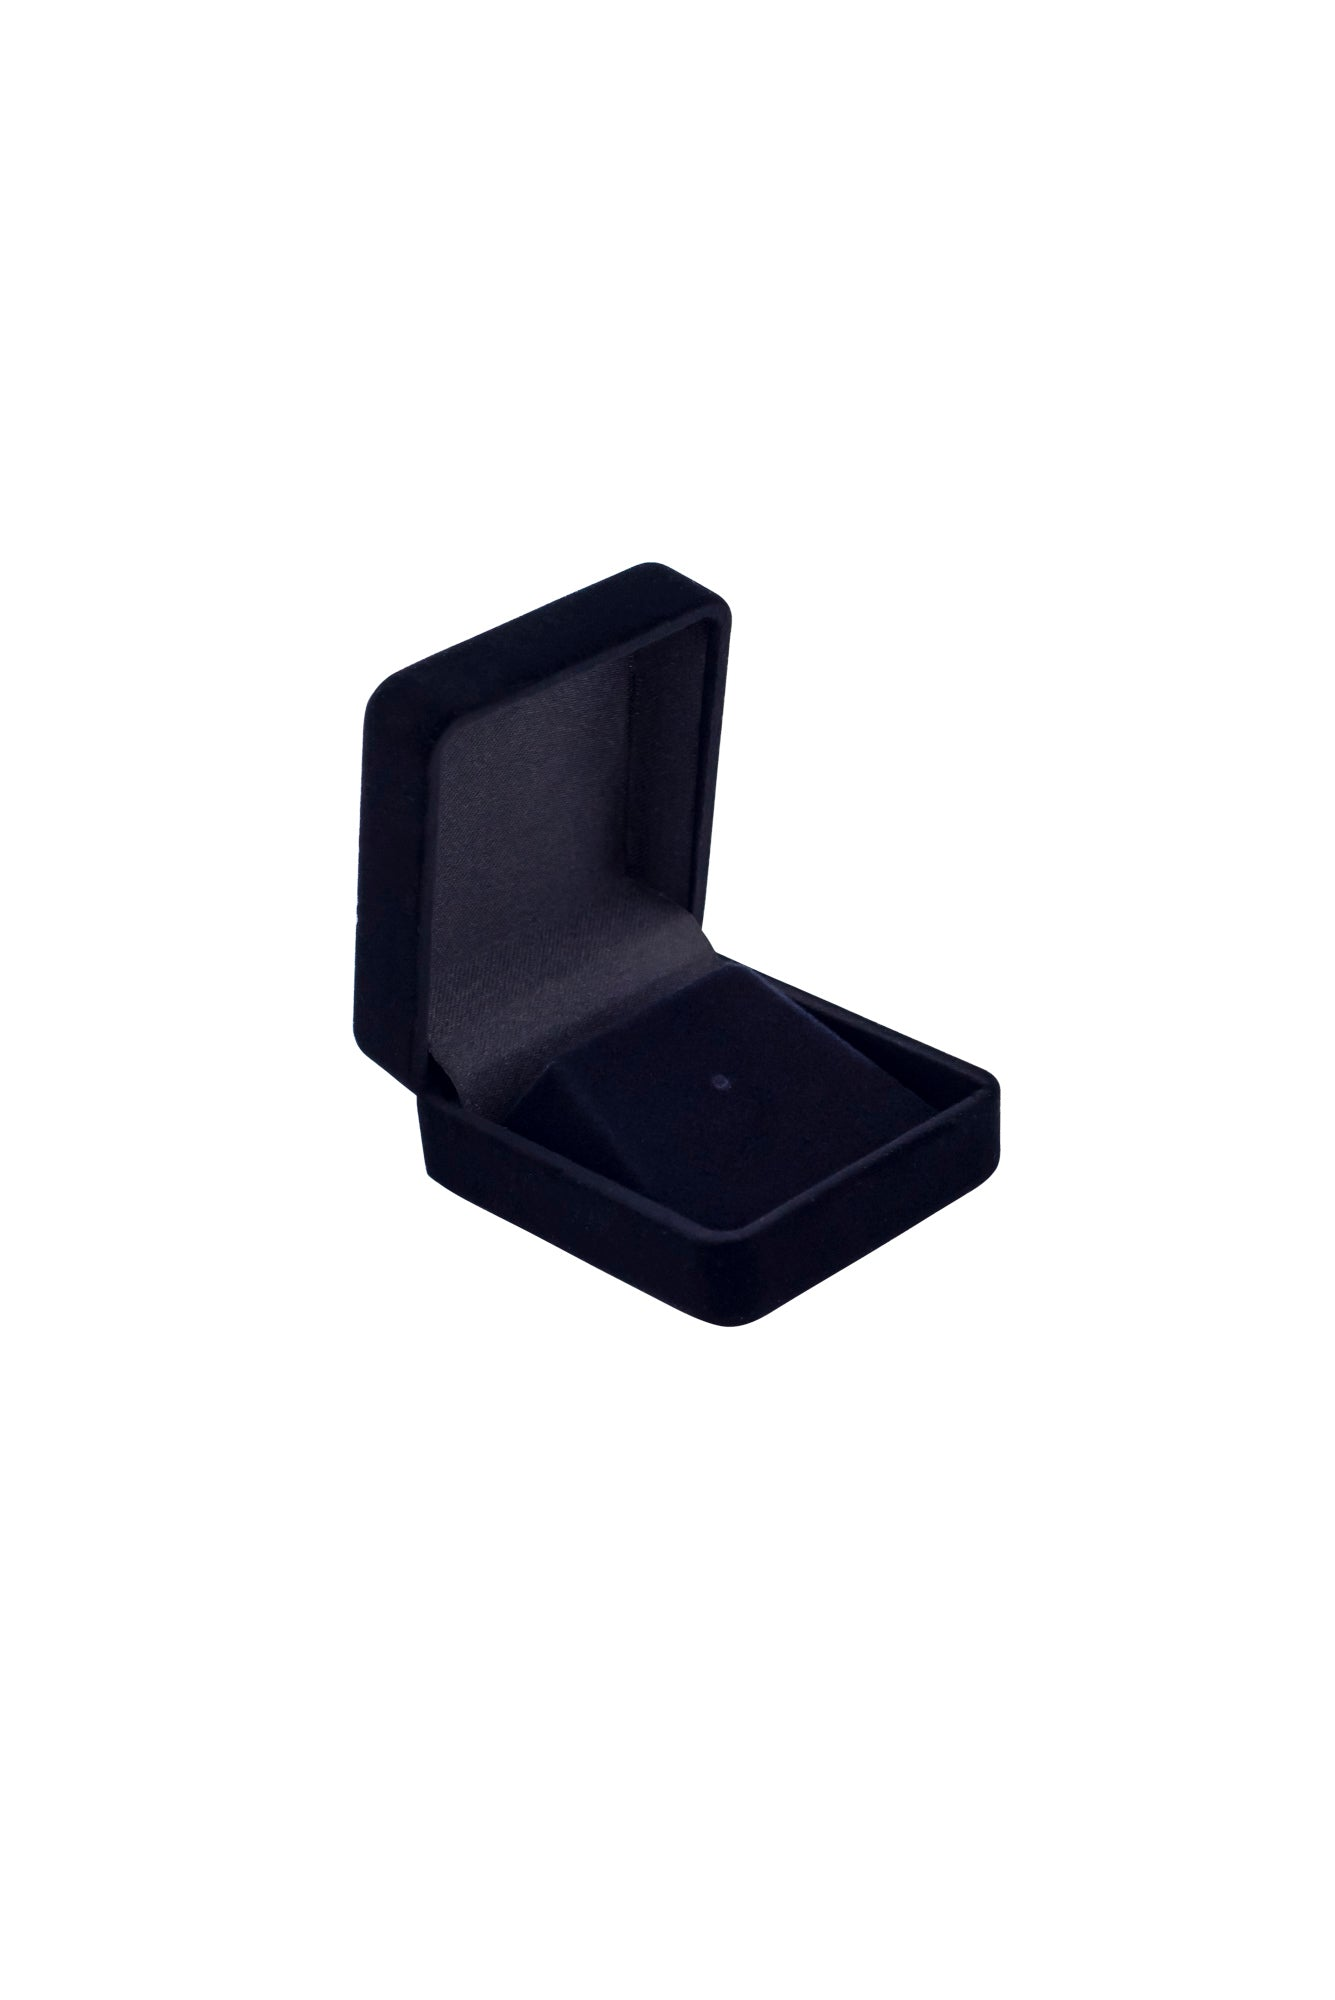 Presentation Case - Lapel Pin